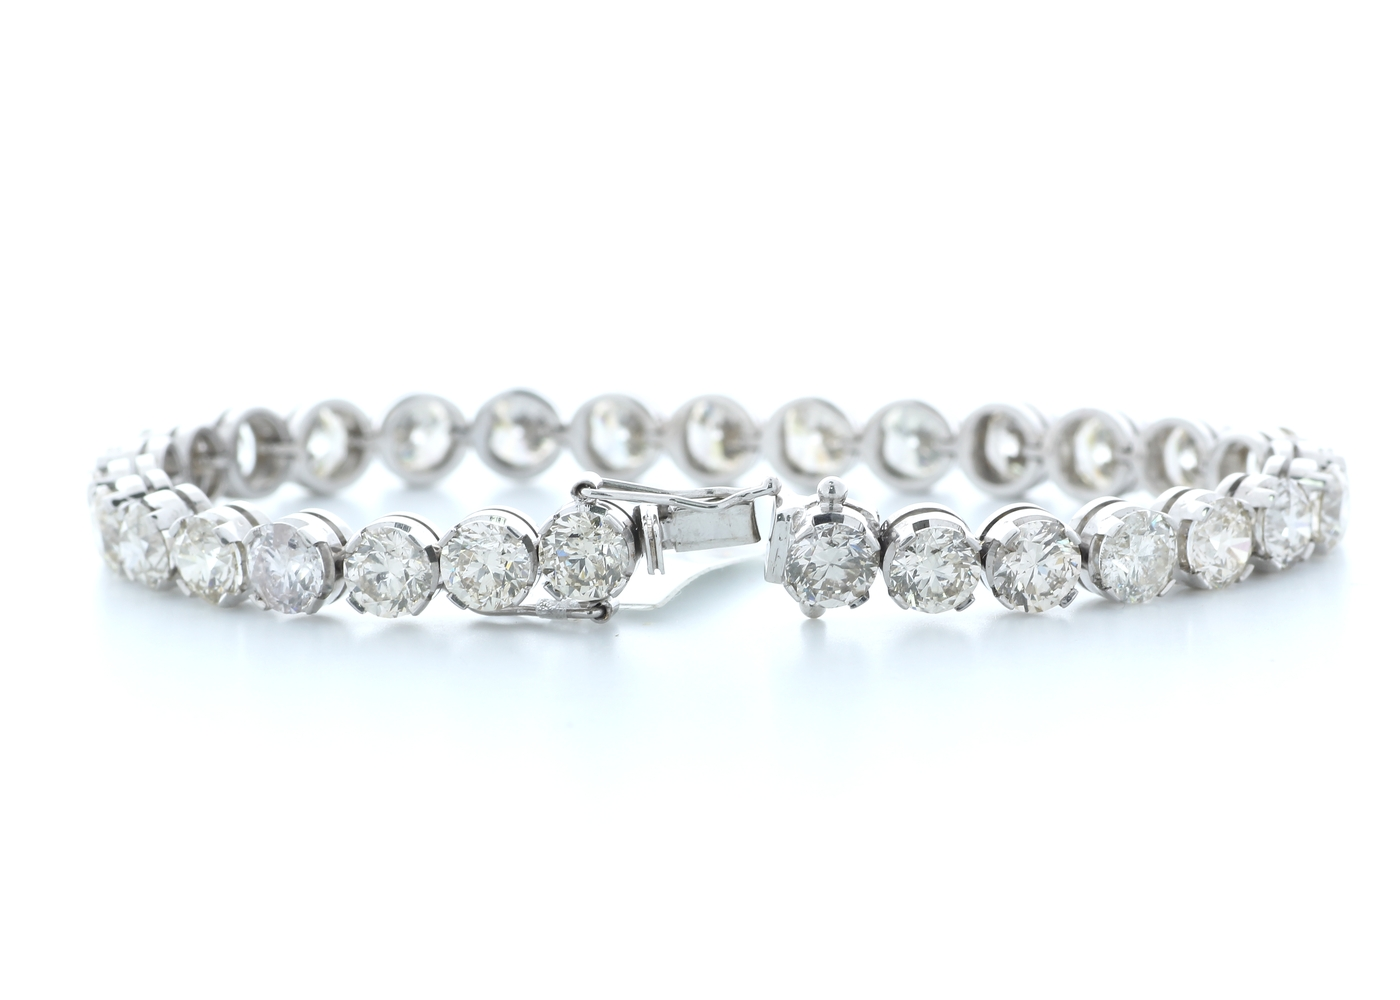 18ct White Gold Claw Set Diamond Tennis Bracelet 23.02 Carats - Image 3 of 4